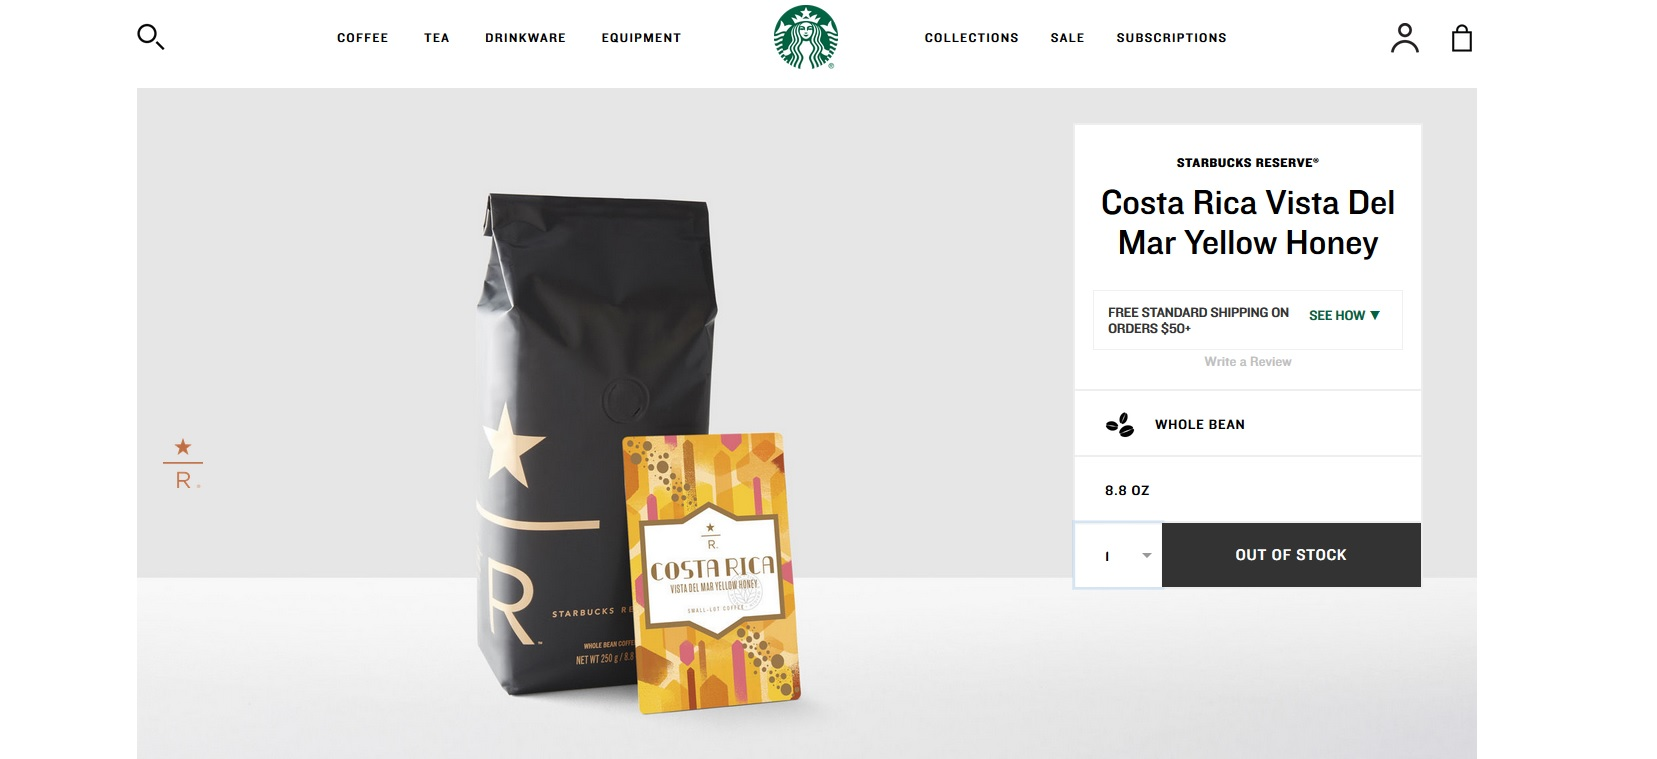 screen cap cost rica vista del mar yellow honey on starbucksstore 2017 Jan 17.jpg